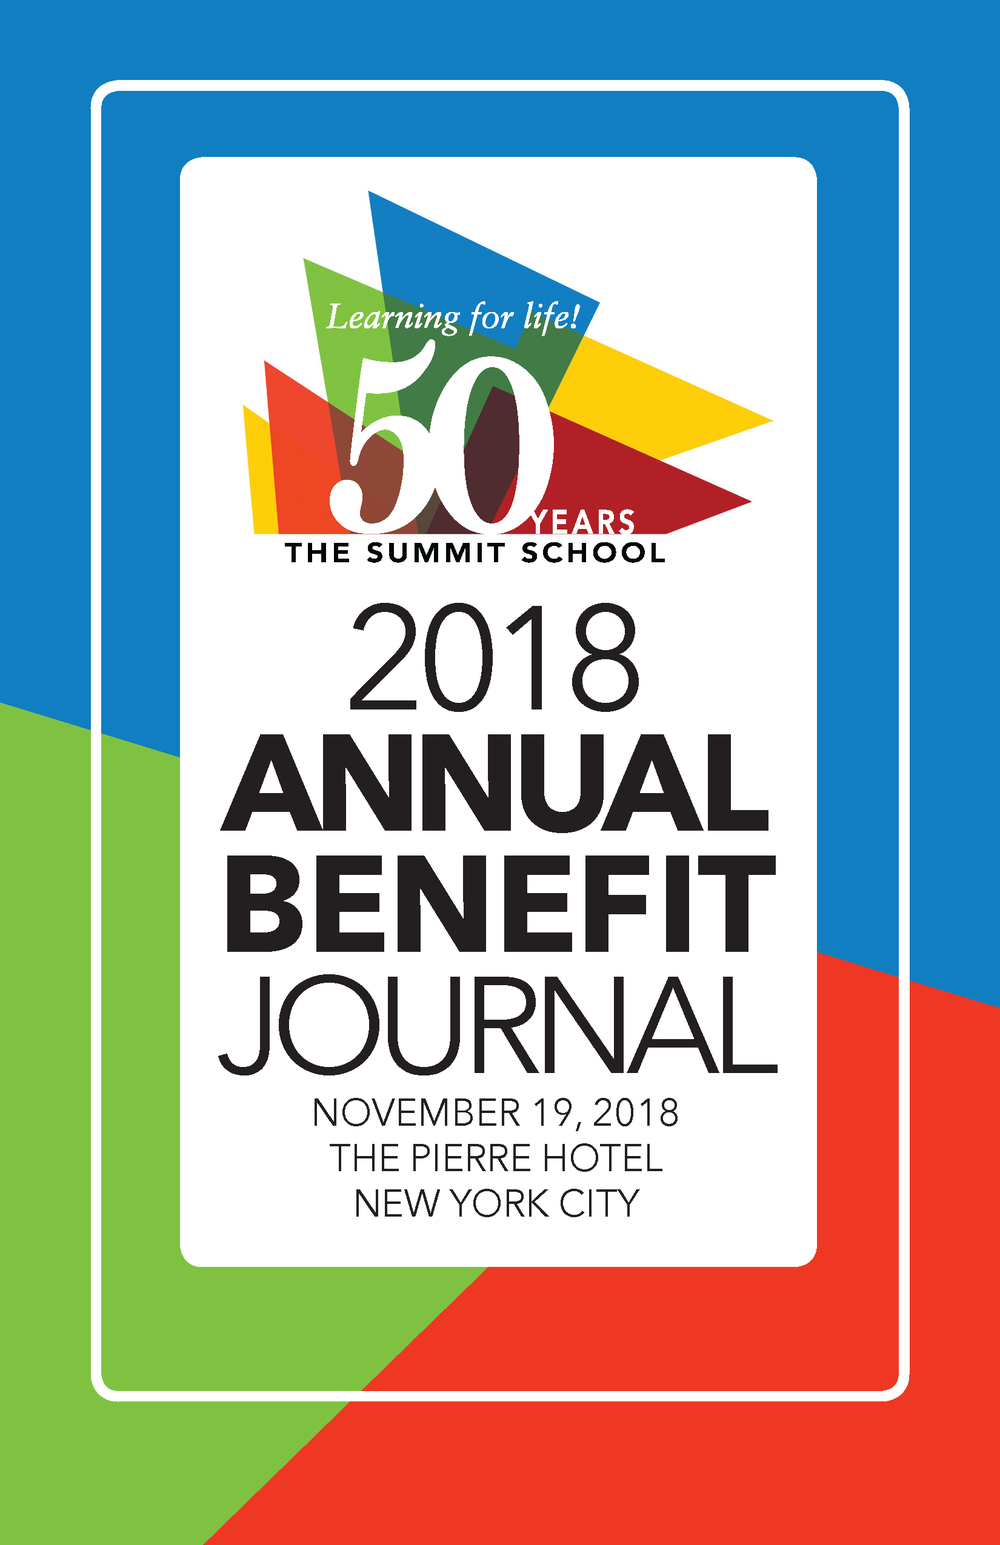 Click image to view Benefit Journal online [pdf]